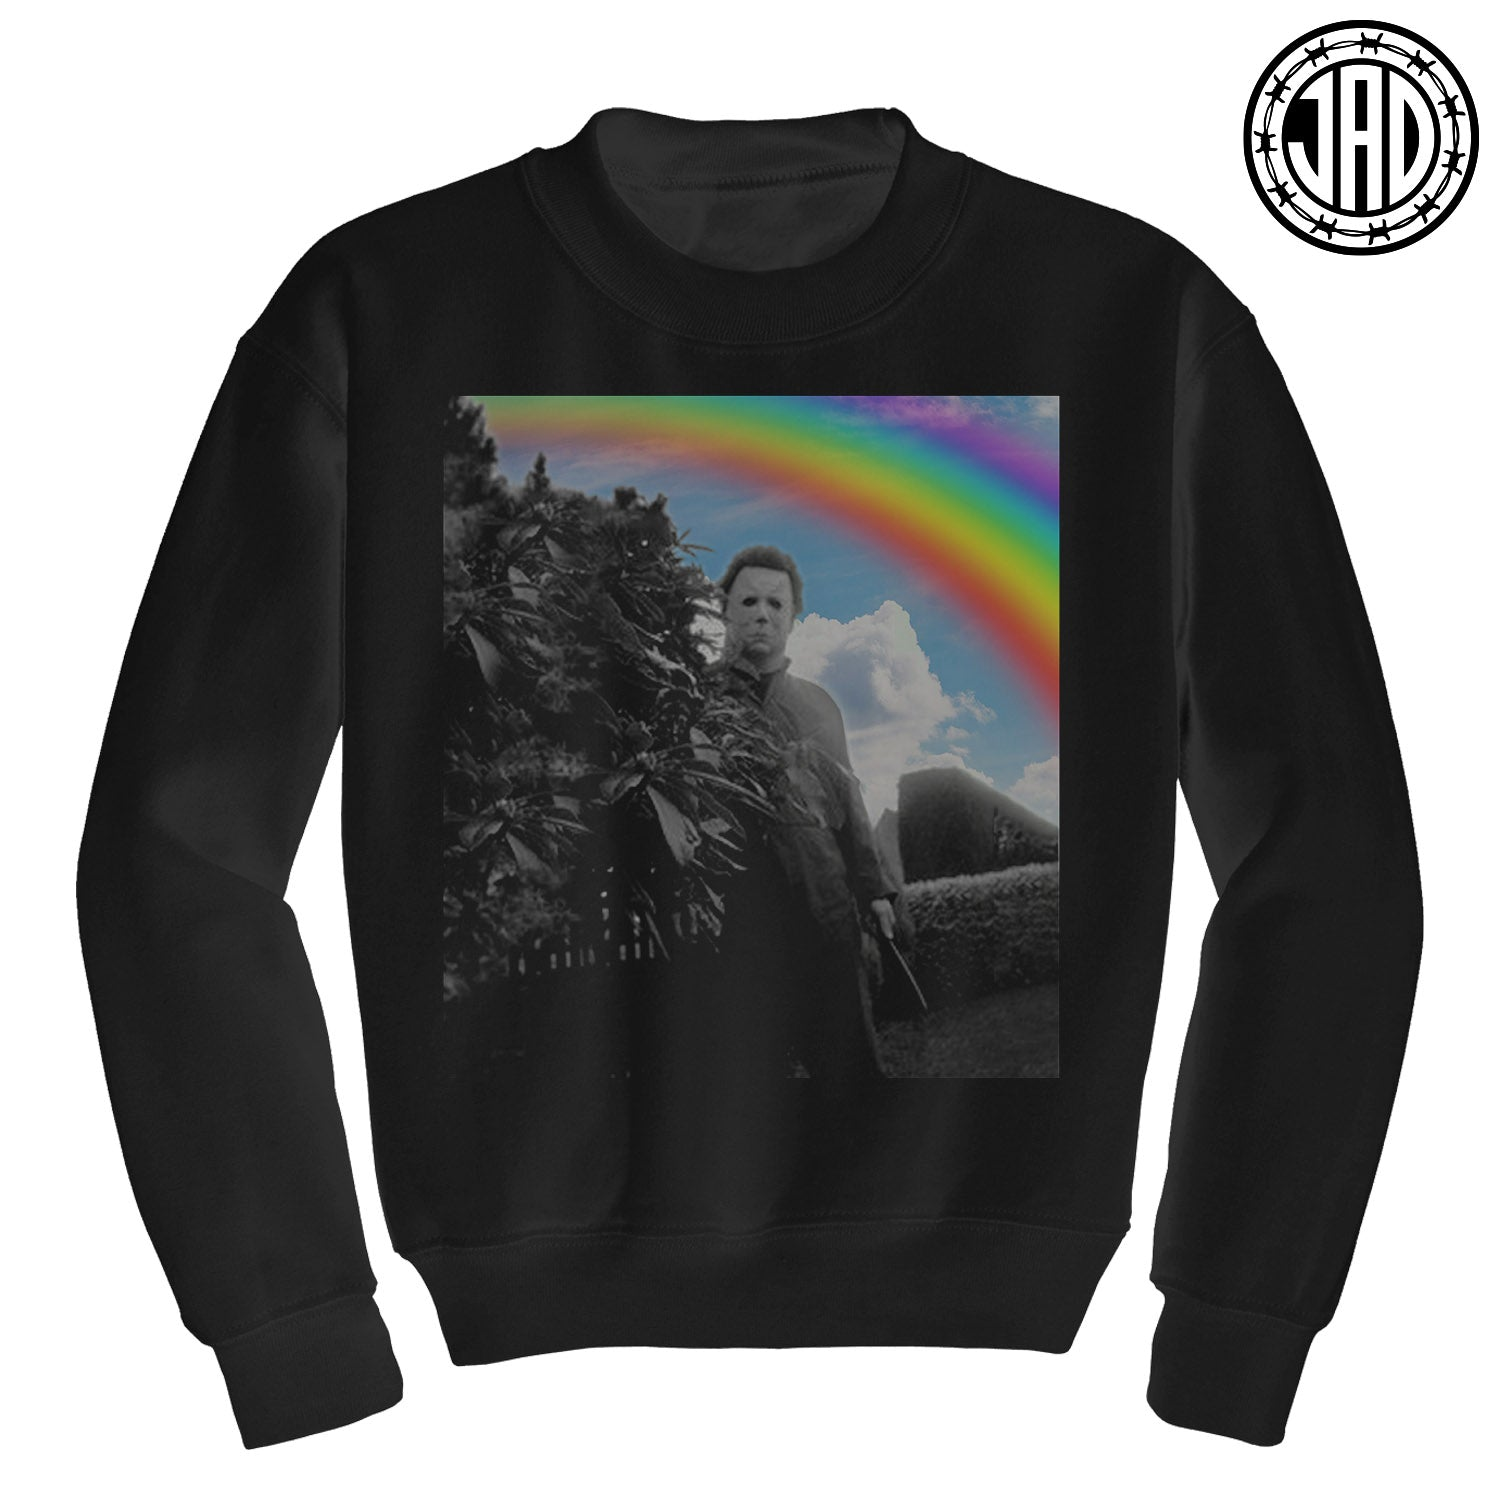 Murder Happy October - Mens (Unisex) Crewneck Sweater